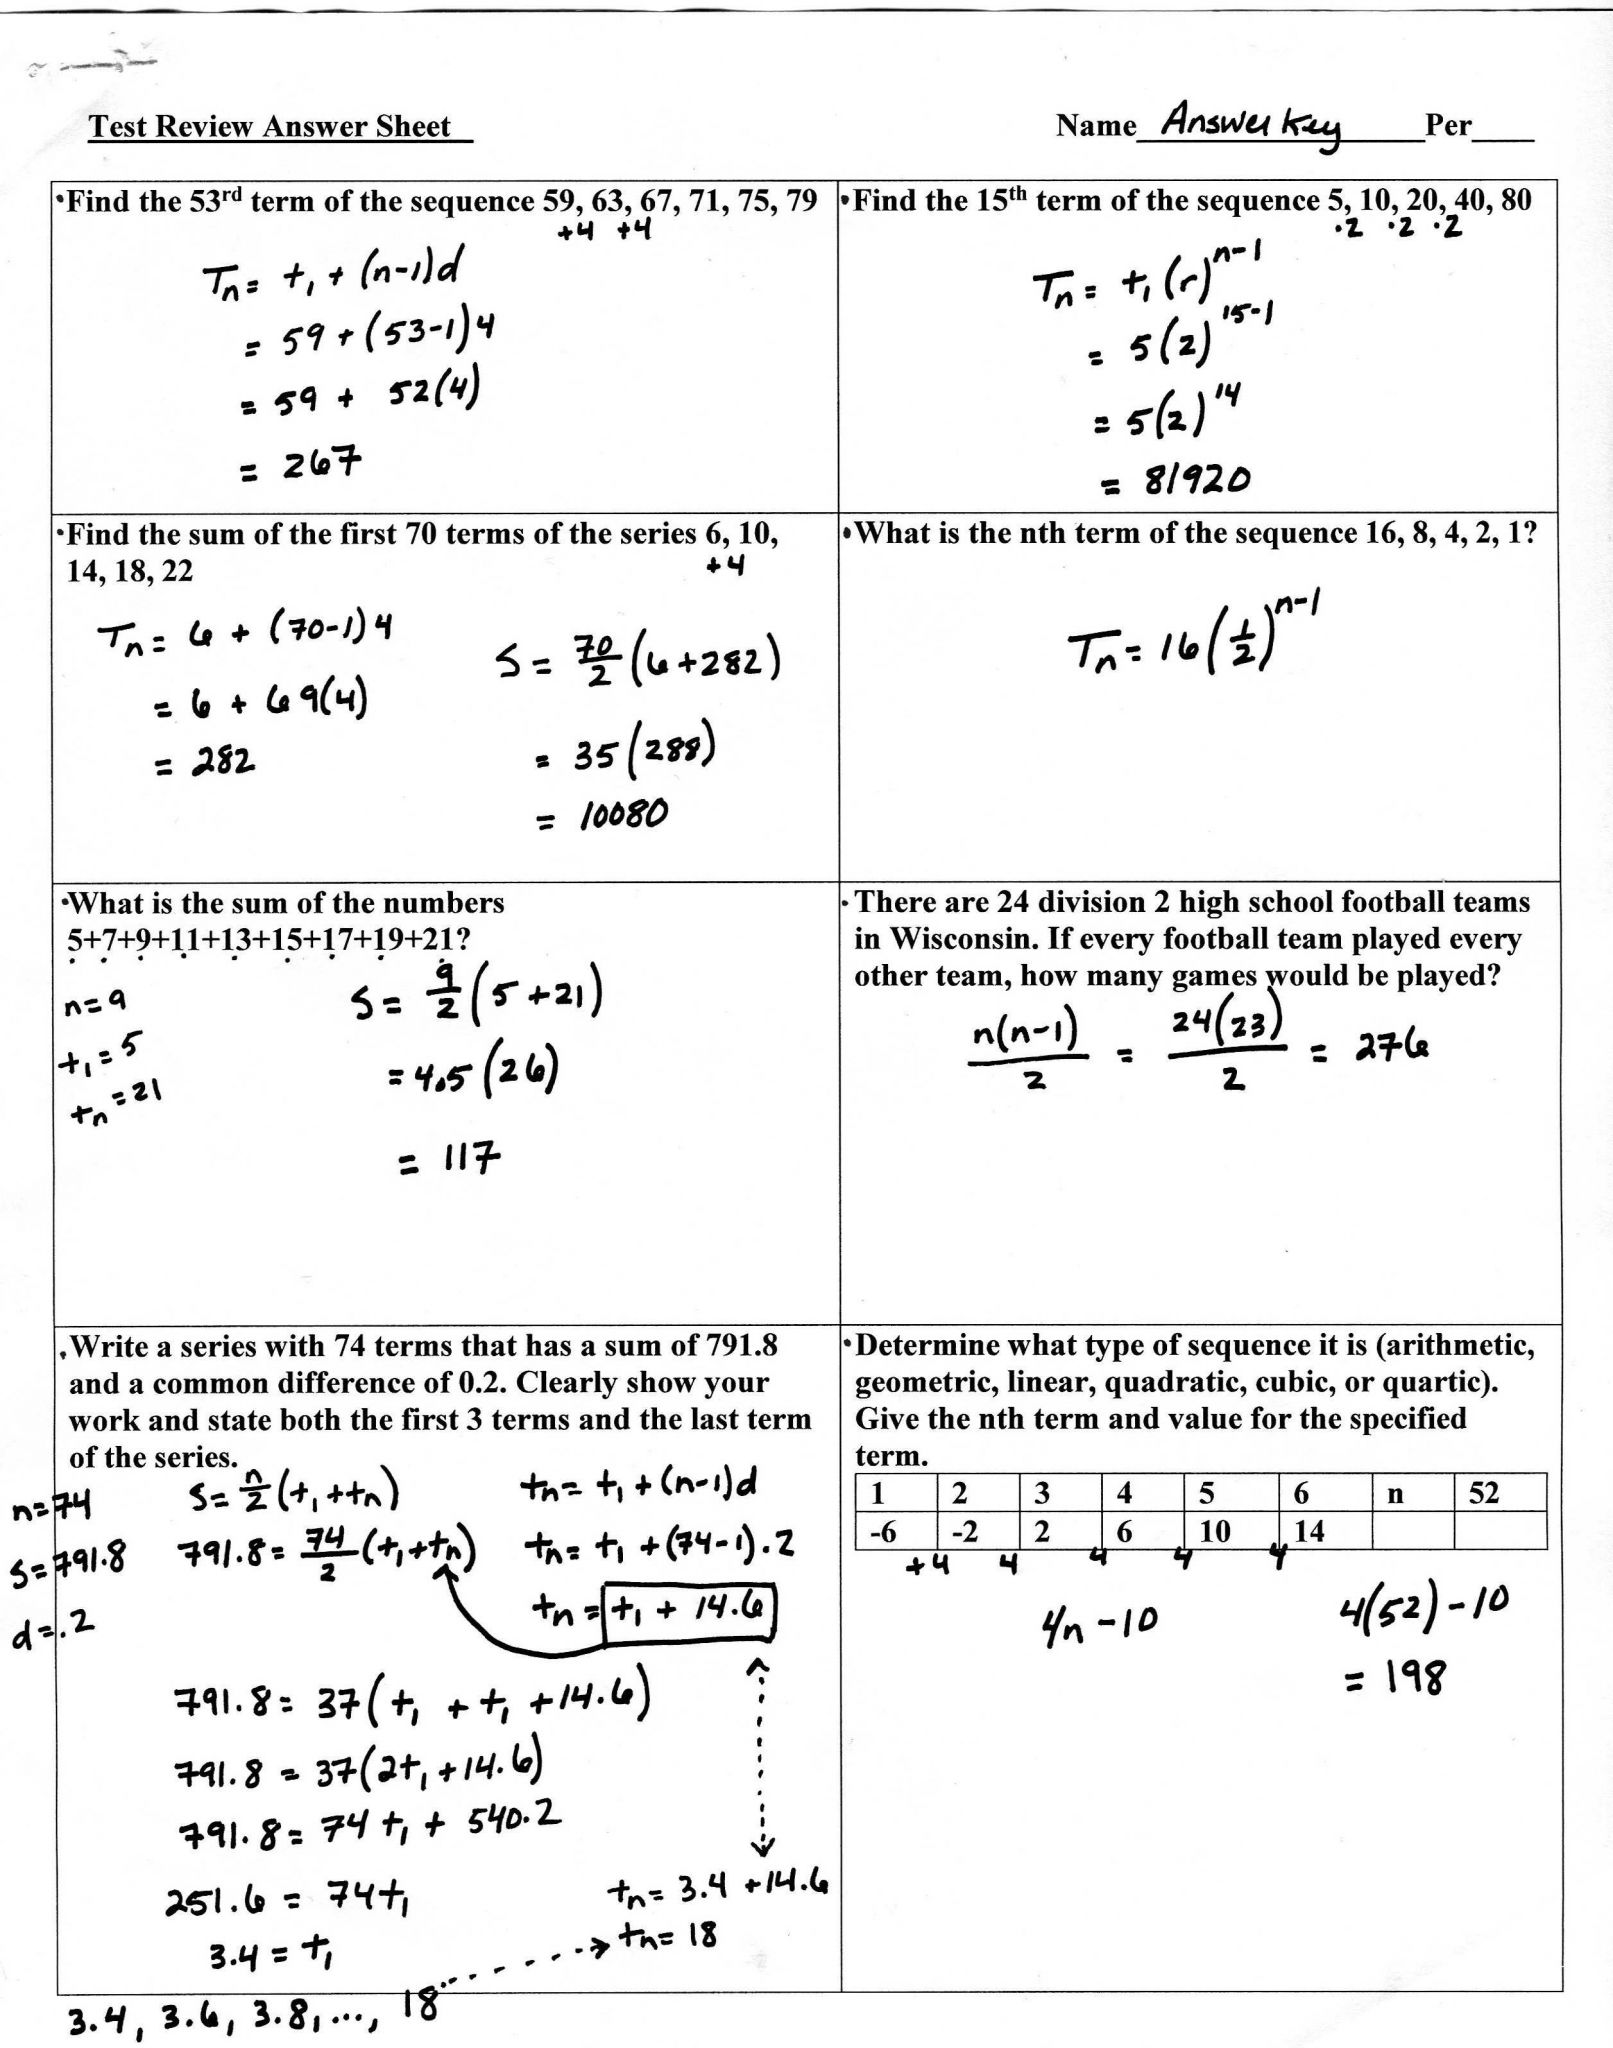 Arithmetic Sequence Worksheet Along with Geometric Sequences and Series Worksheet Answers Beautiful Worksheet